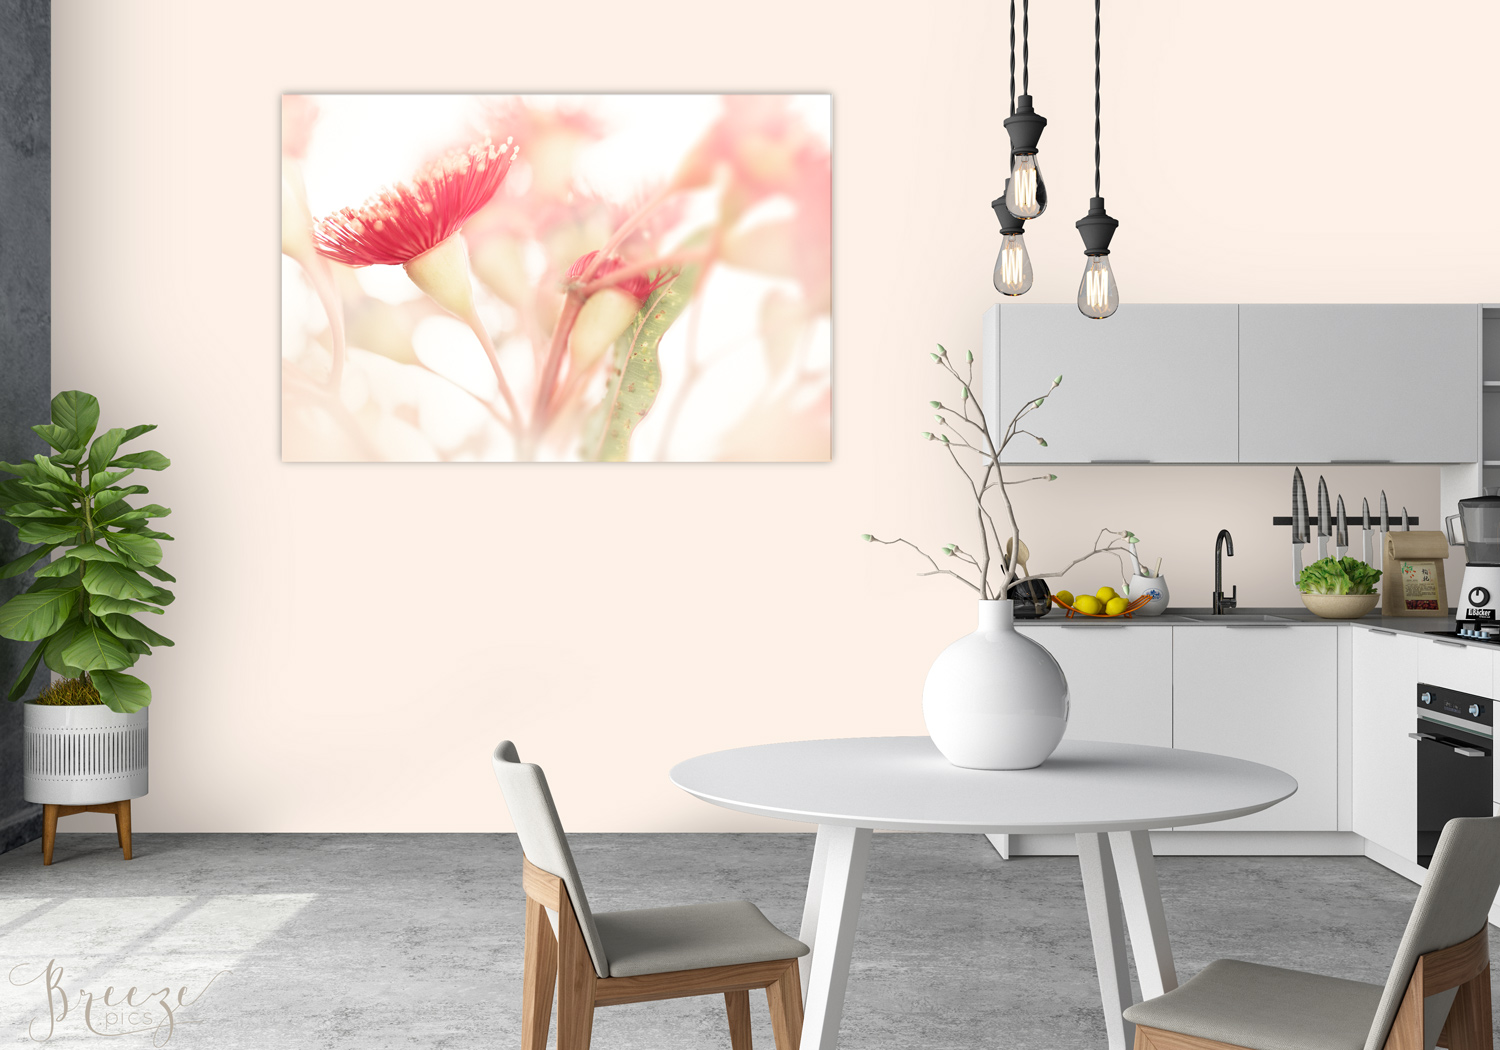 Eucalyptus Kitchen Mockup Limited Edition Fine Art Limited Edition Print, Breeze Pics